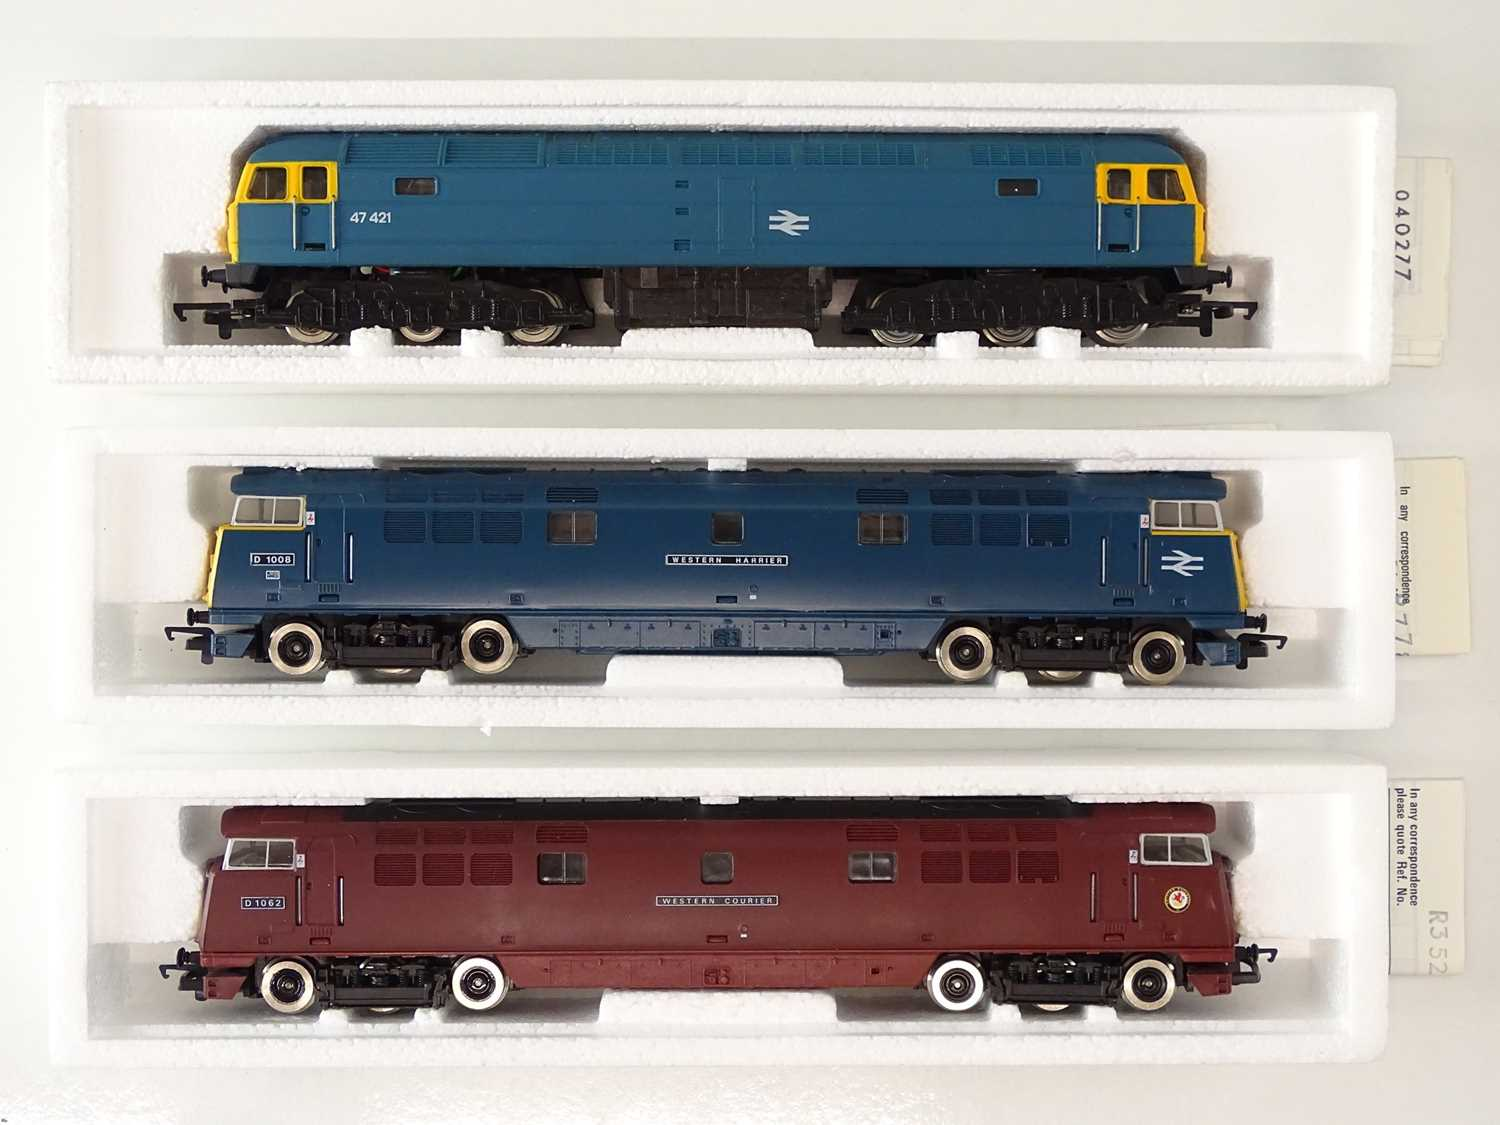 A group of HORNBY OO Gauge diesel locomotives comprising: A Class 47 and two Westerns in BR blue and - Image 2 of 3